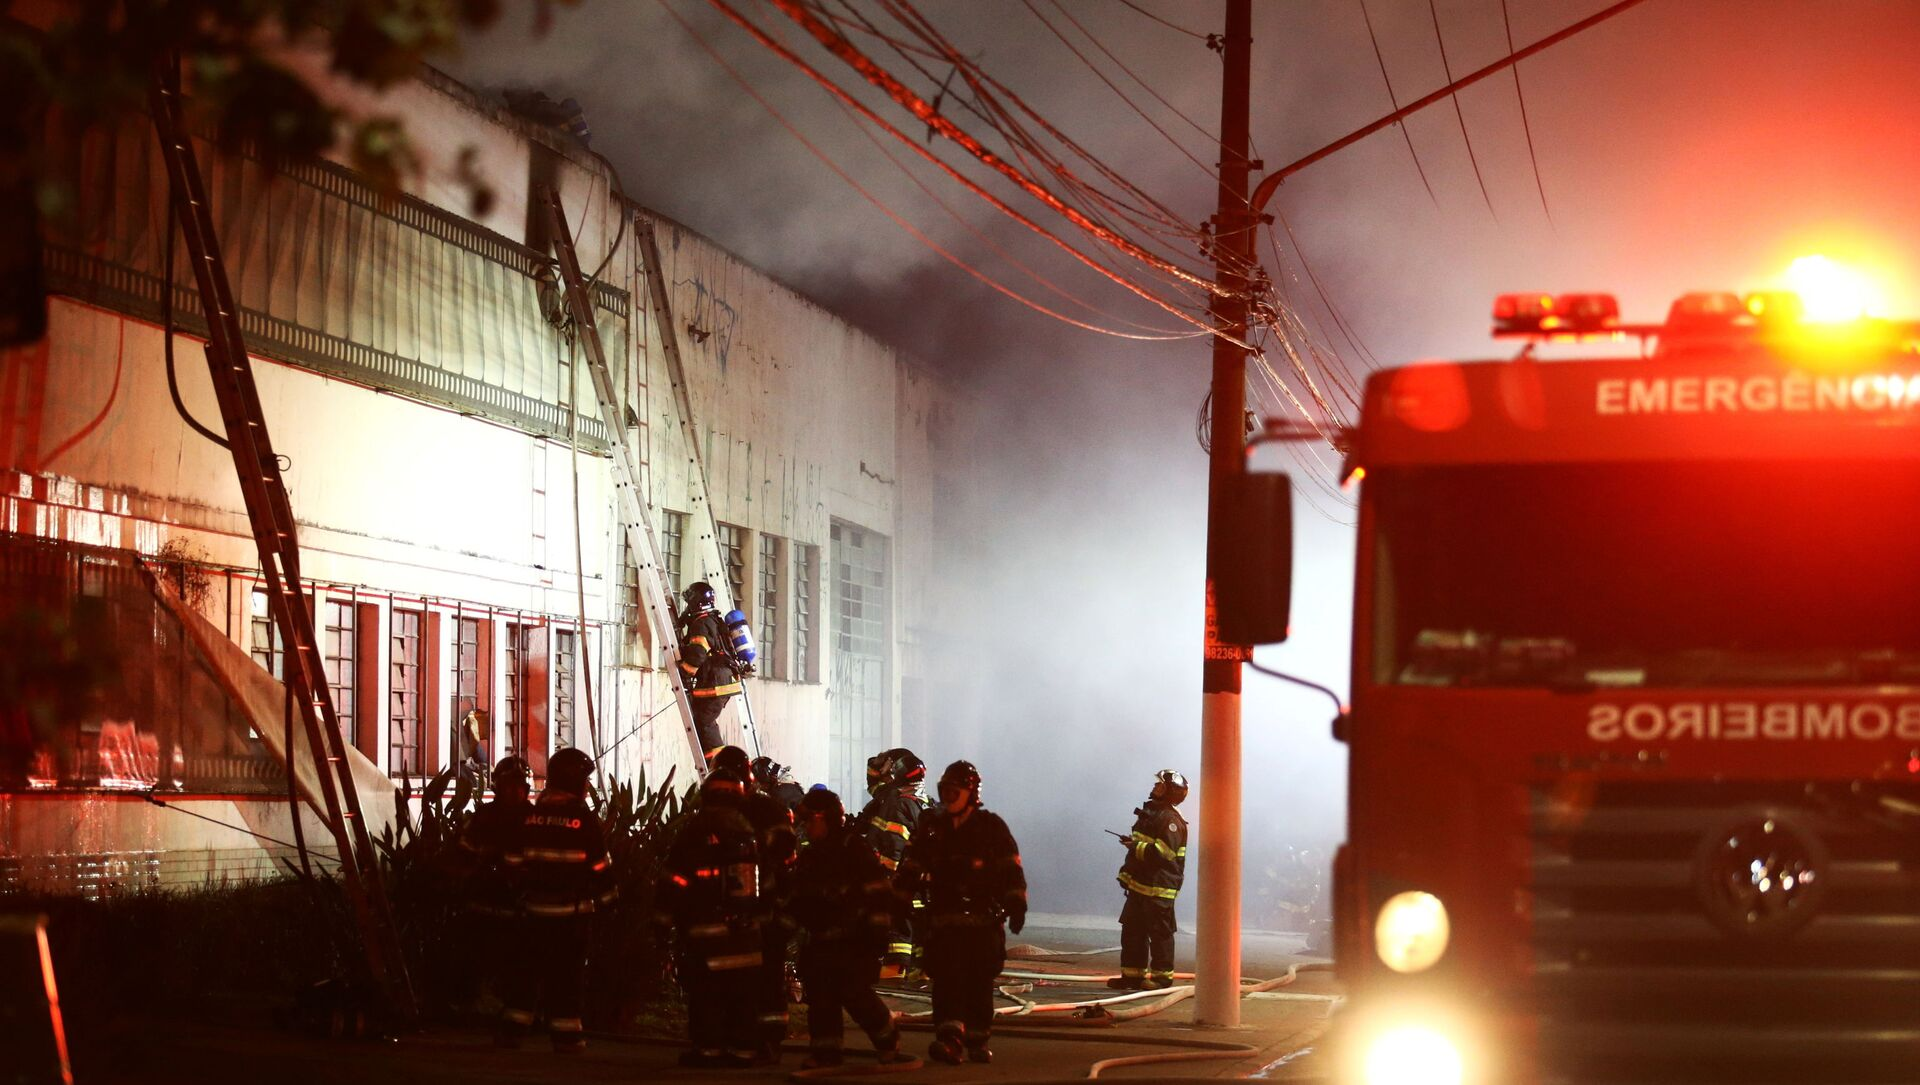 Firefighters work to put out fire at the Cinemateca Brasileira, an institution responsible for preserving audiovisual production, in Sao Paulo, Brazil July 29, 2021 - Sputnik International, 1920, 30.07.2021